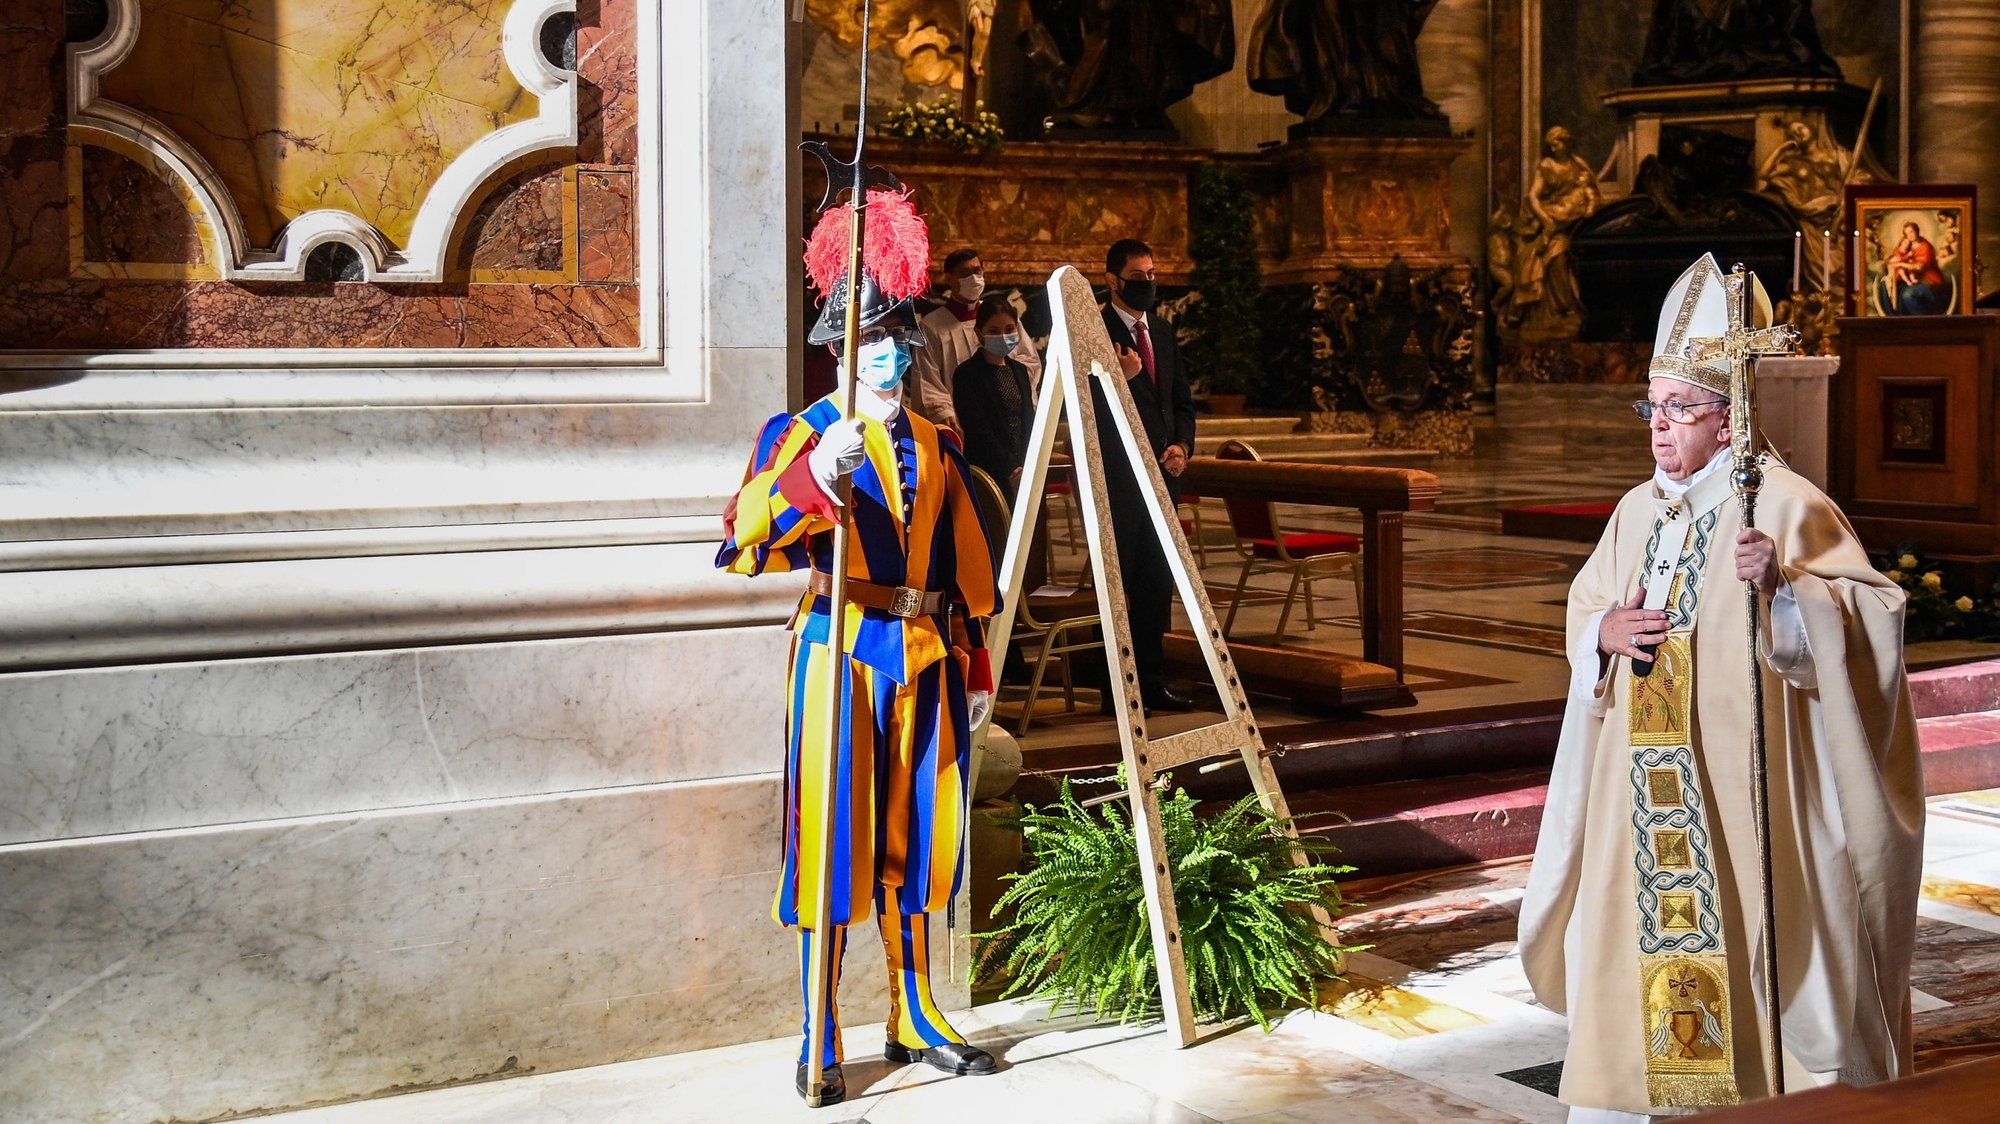 epa08835419 Pope Francis (R) walks by a Swiss Guard wearing a face mask, as he leaves after celebrating a Mass for the feast of Christ the King, as part of World Youth Day at St. Peter's Basilica in The Vatican, 22 November 2020.  EPA/VINCENZO PINTO / POOL